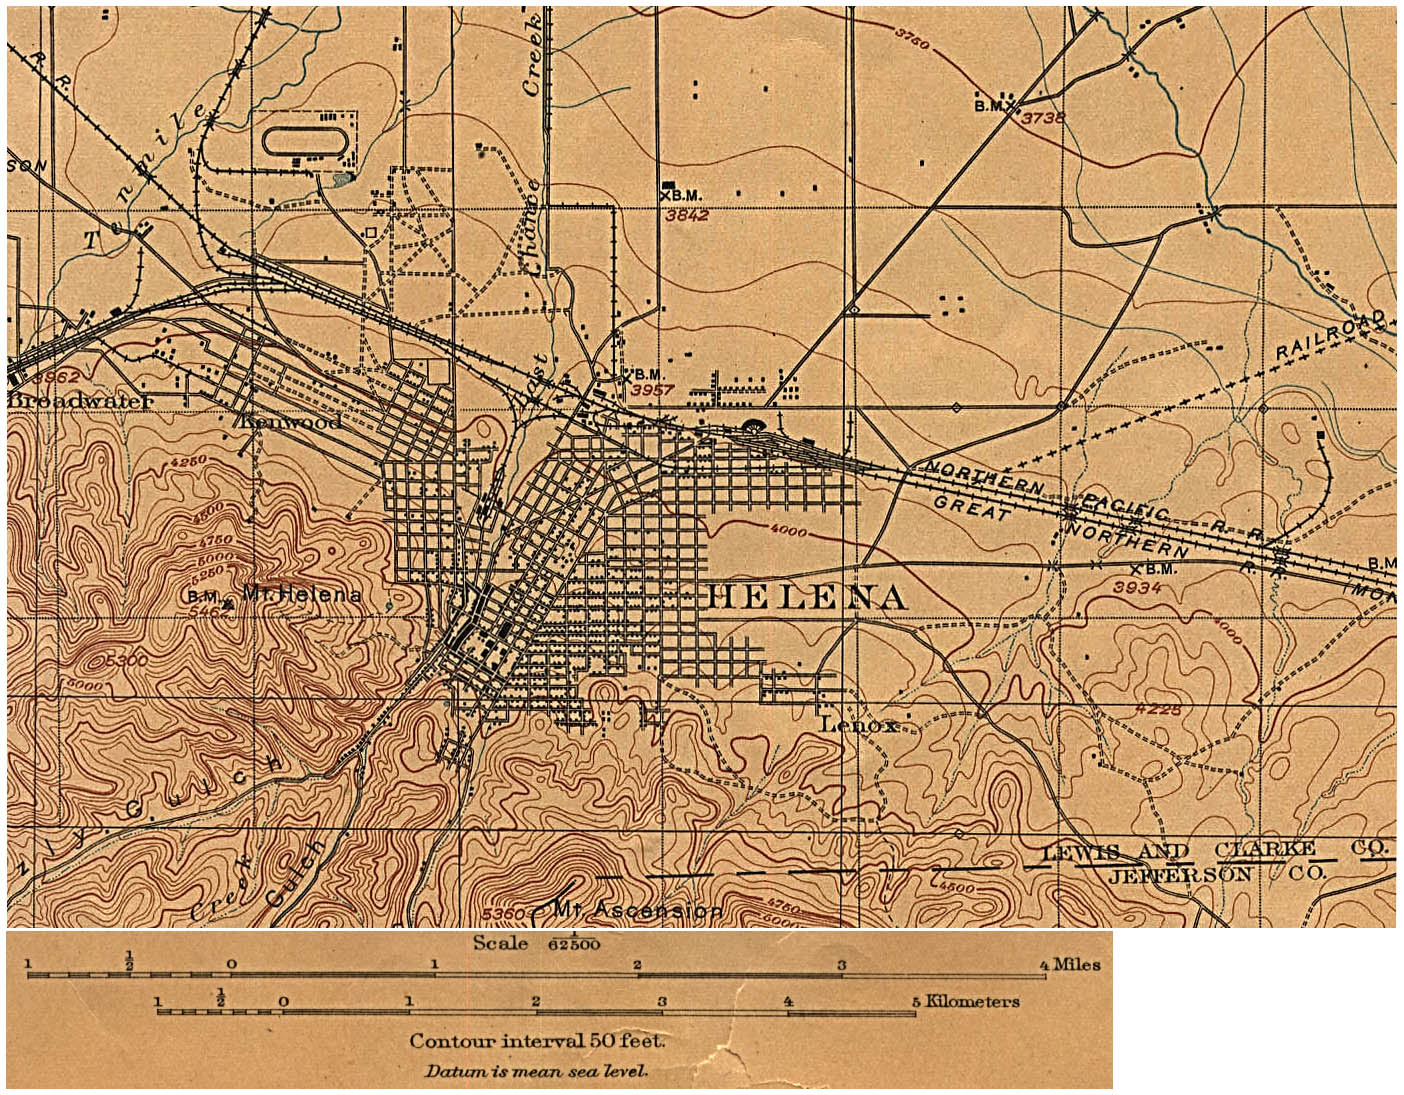 Helena Topographic City Map, Montana, United States 1899